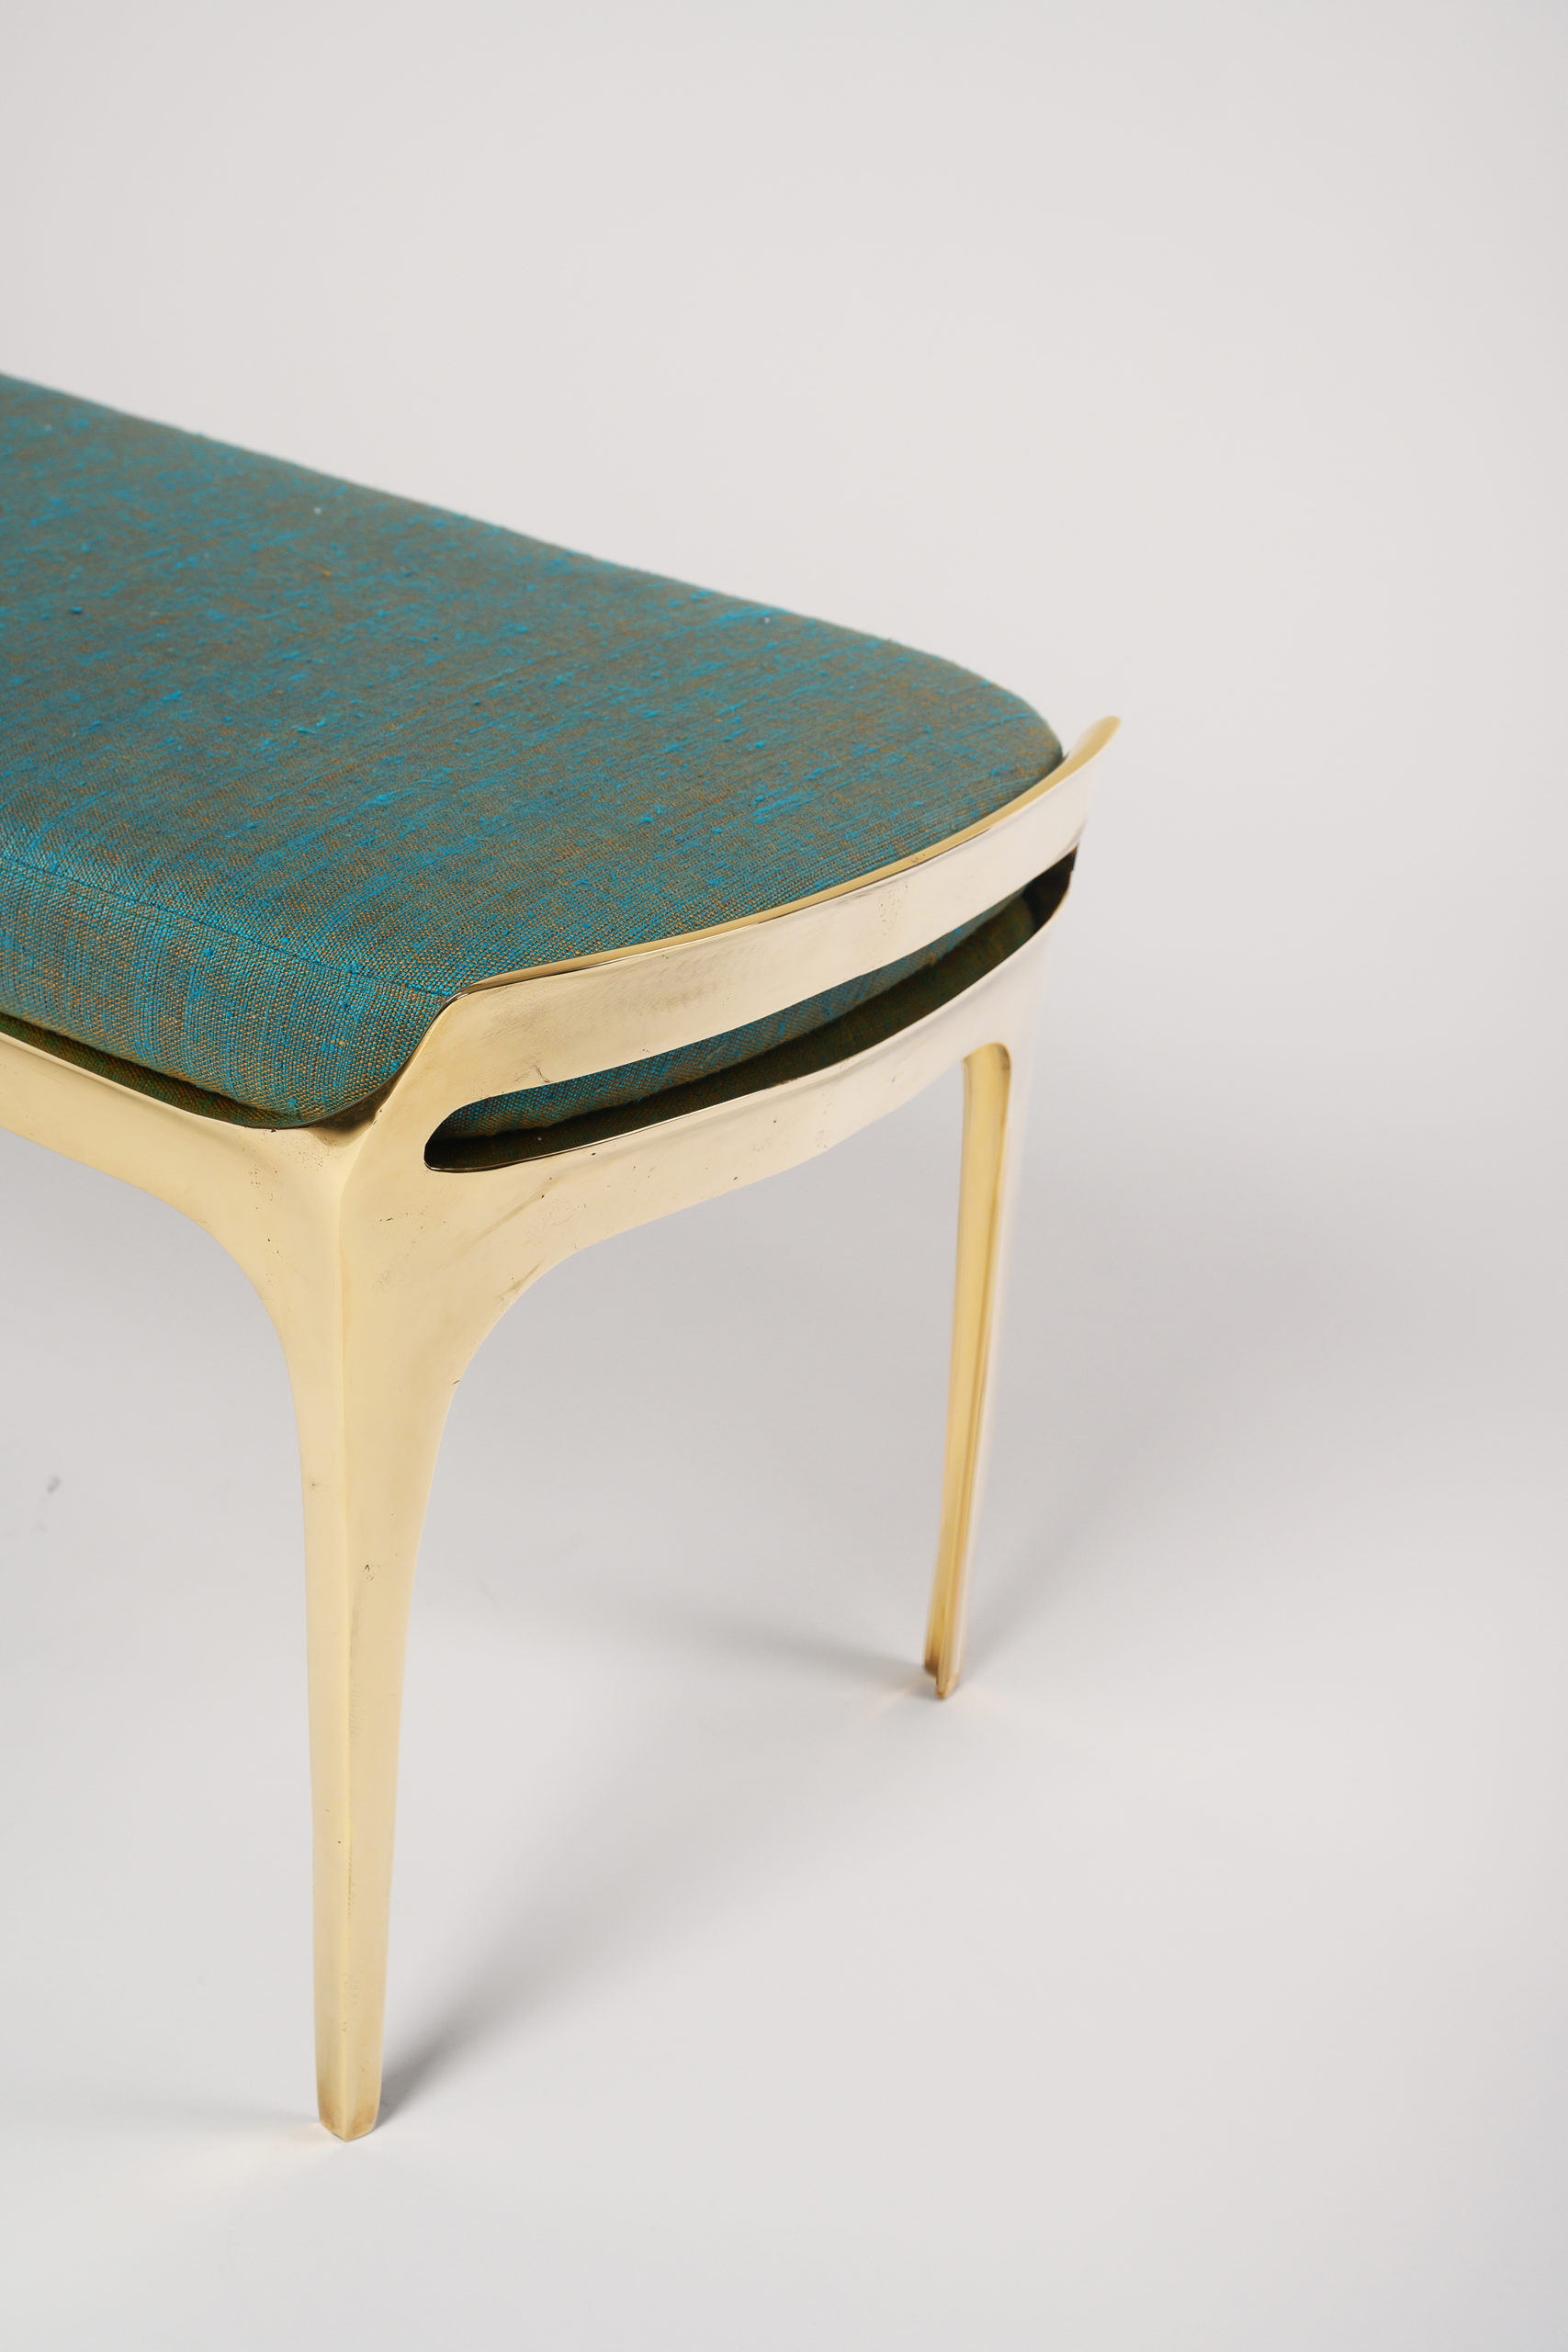 NYDC_WNWN_products_david_sutherland_elain_atelier_BEE_5215